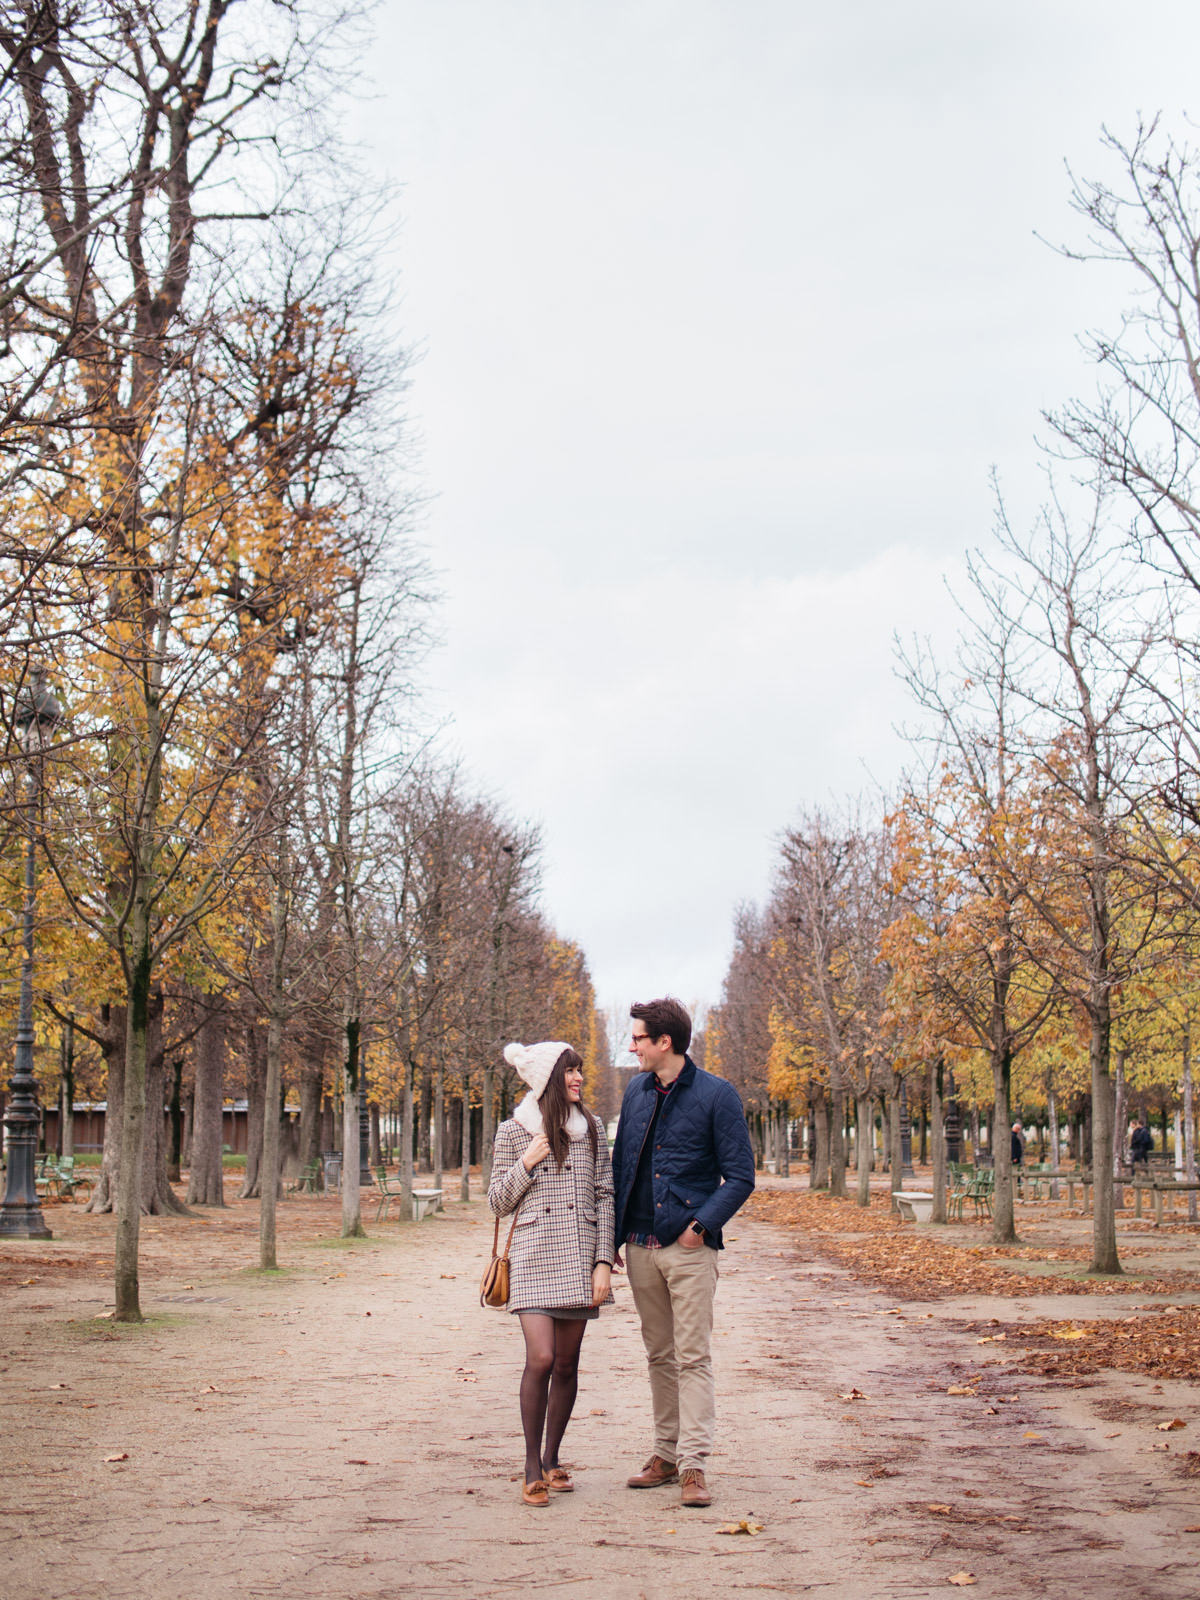 Blog-Mode-And-The-City-Looks-Les-Tuileries-A-Automne-12